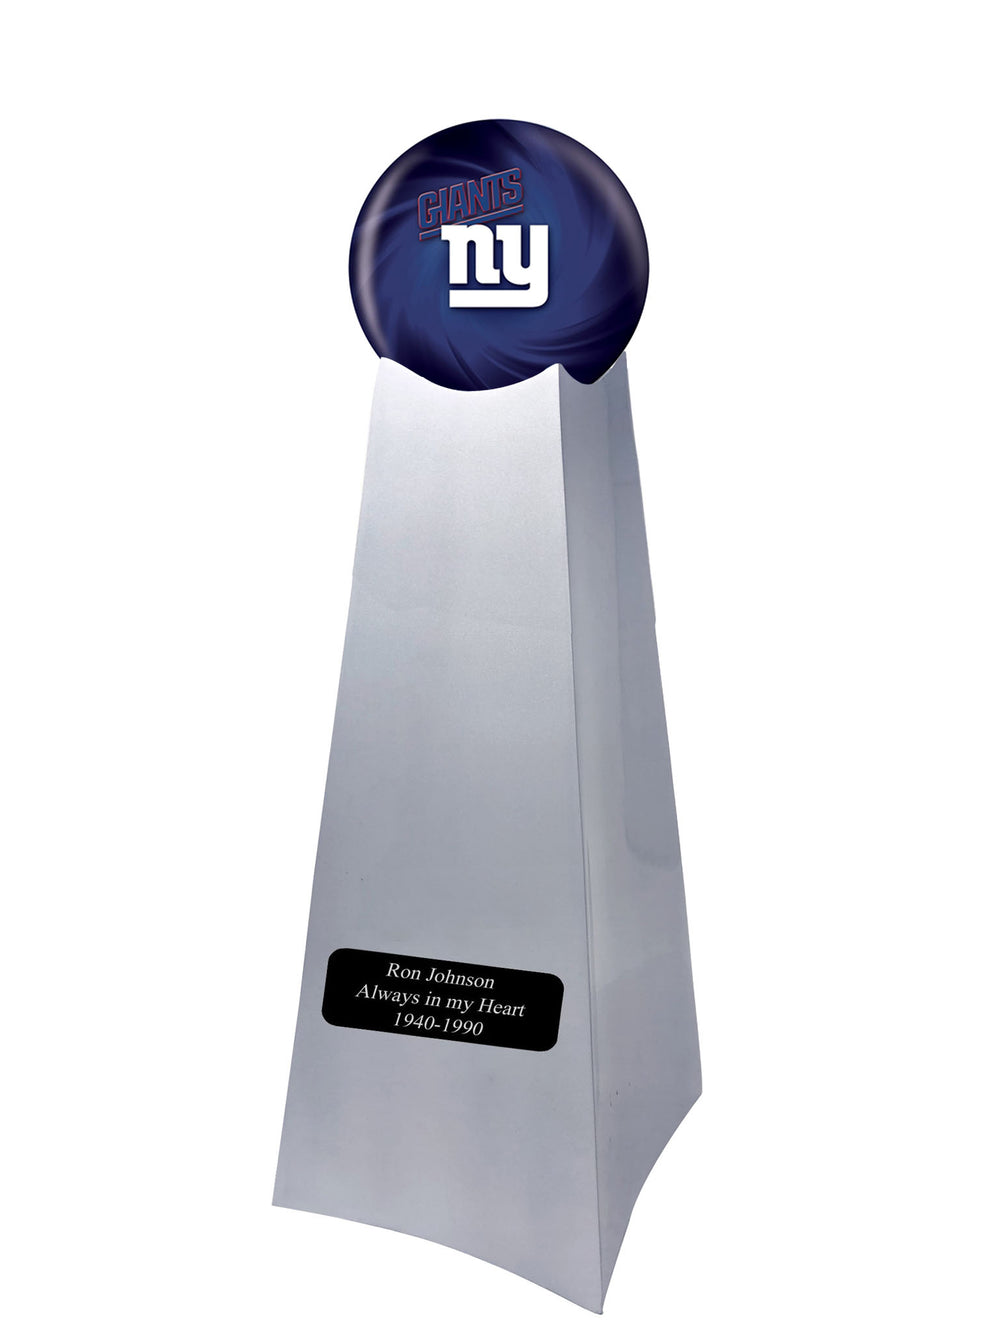 Championship Trophy Urn Base with Optional New York Giants Team Sphere